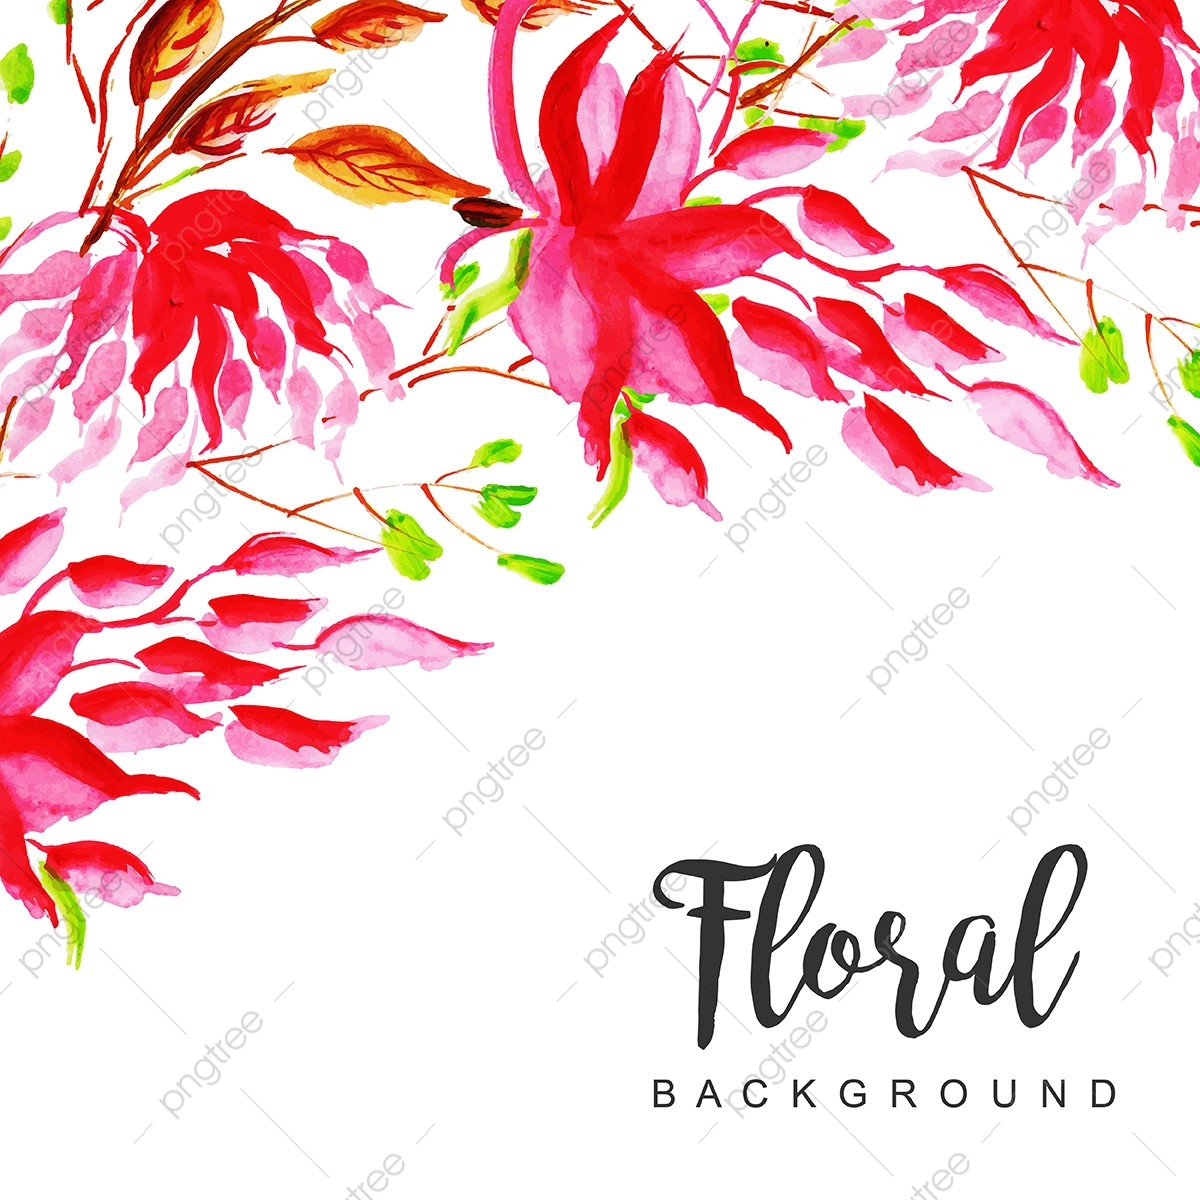 Watercolor Floral Frame Multi Purpose Background Watercolor